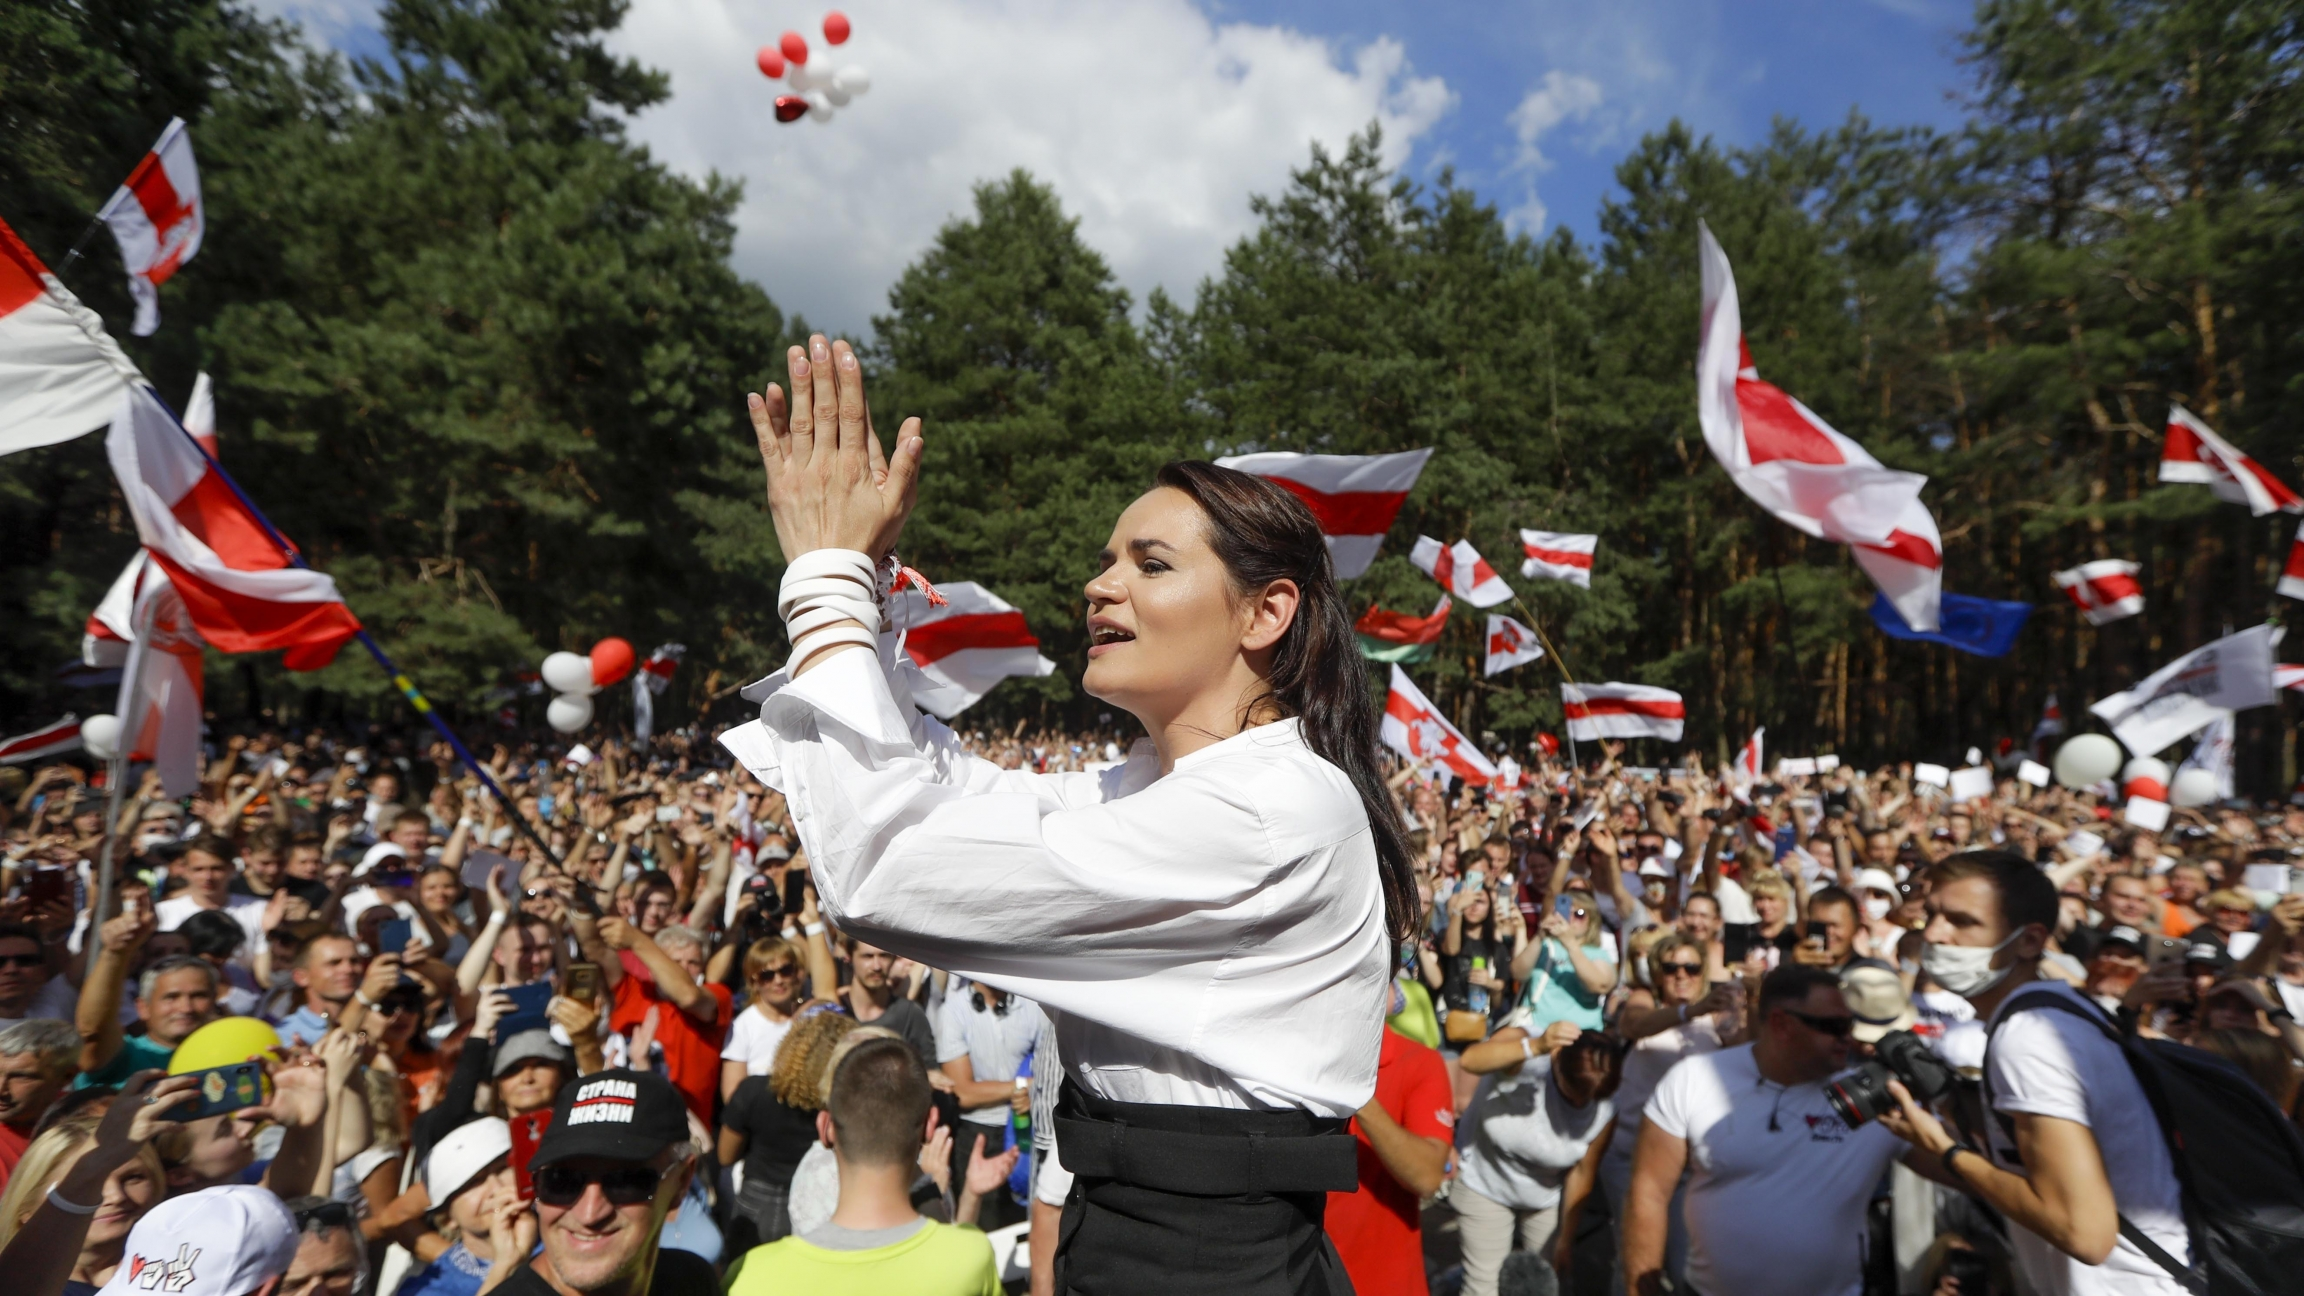 Svetlana Tikhanovskaya, a candidate for the presidential elections in Belarus, greets people during a meeting in her support in Brest, Belarus,Aug. 2, 2020.